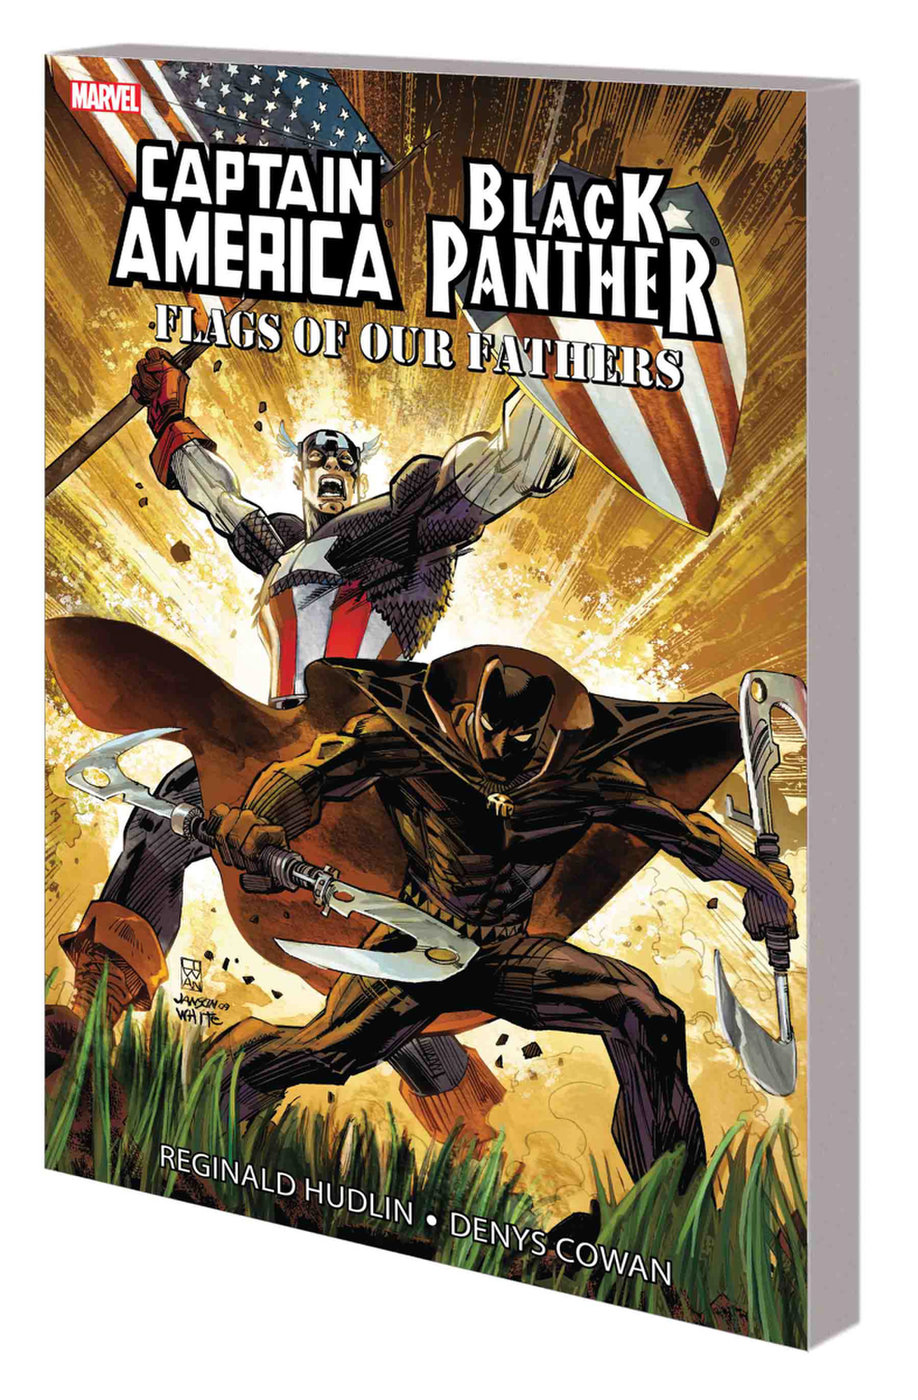 CaptainAmericaBlackPanther